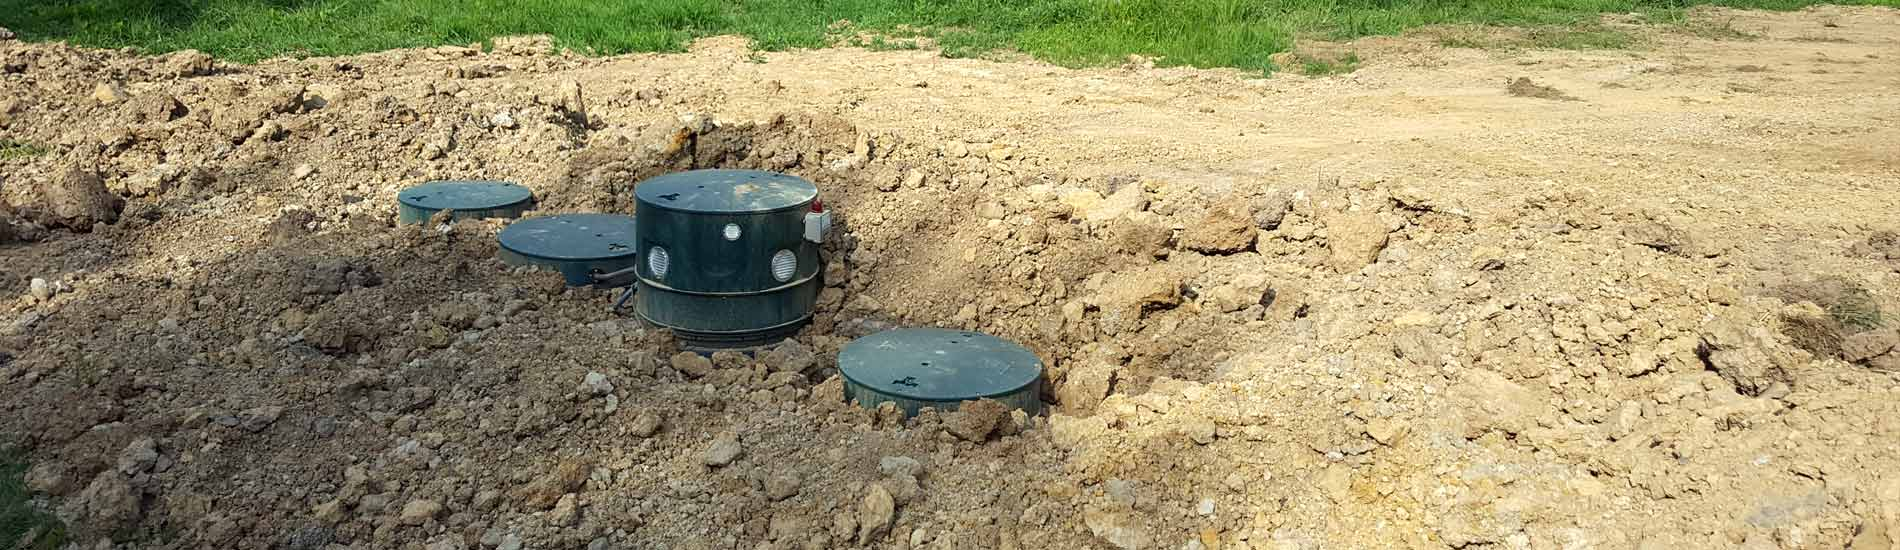 Septic system tanks and site grading